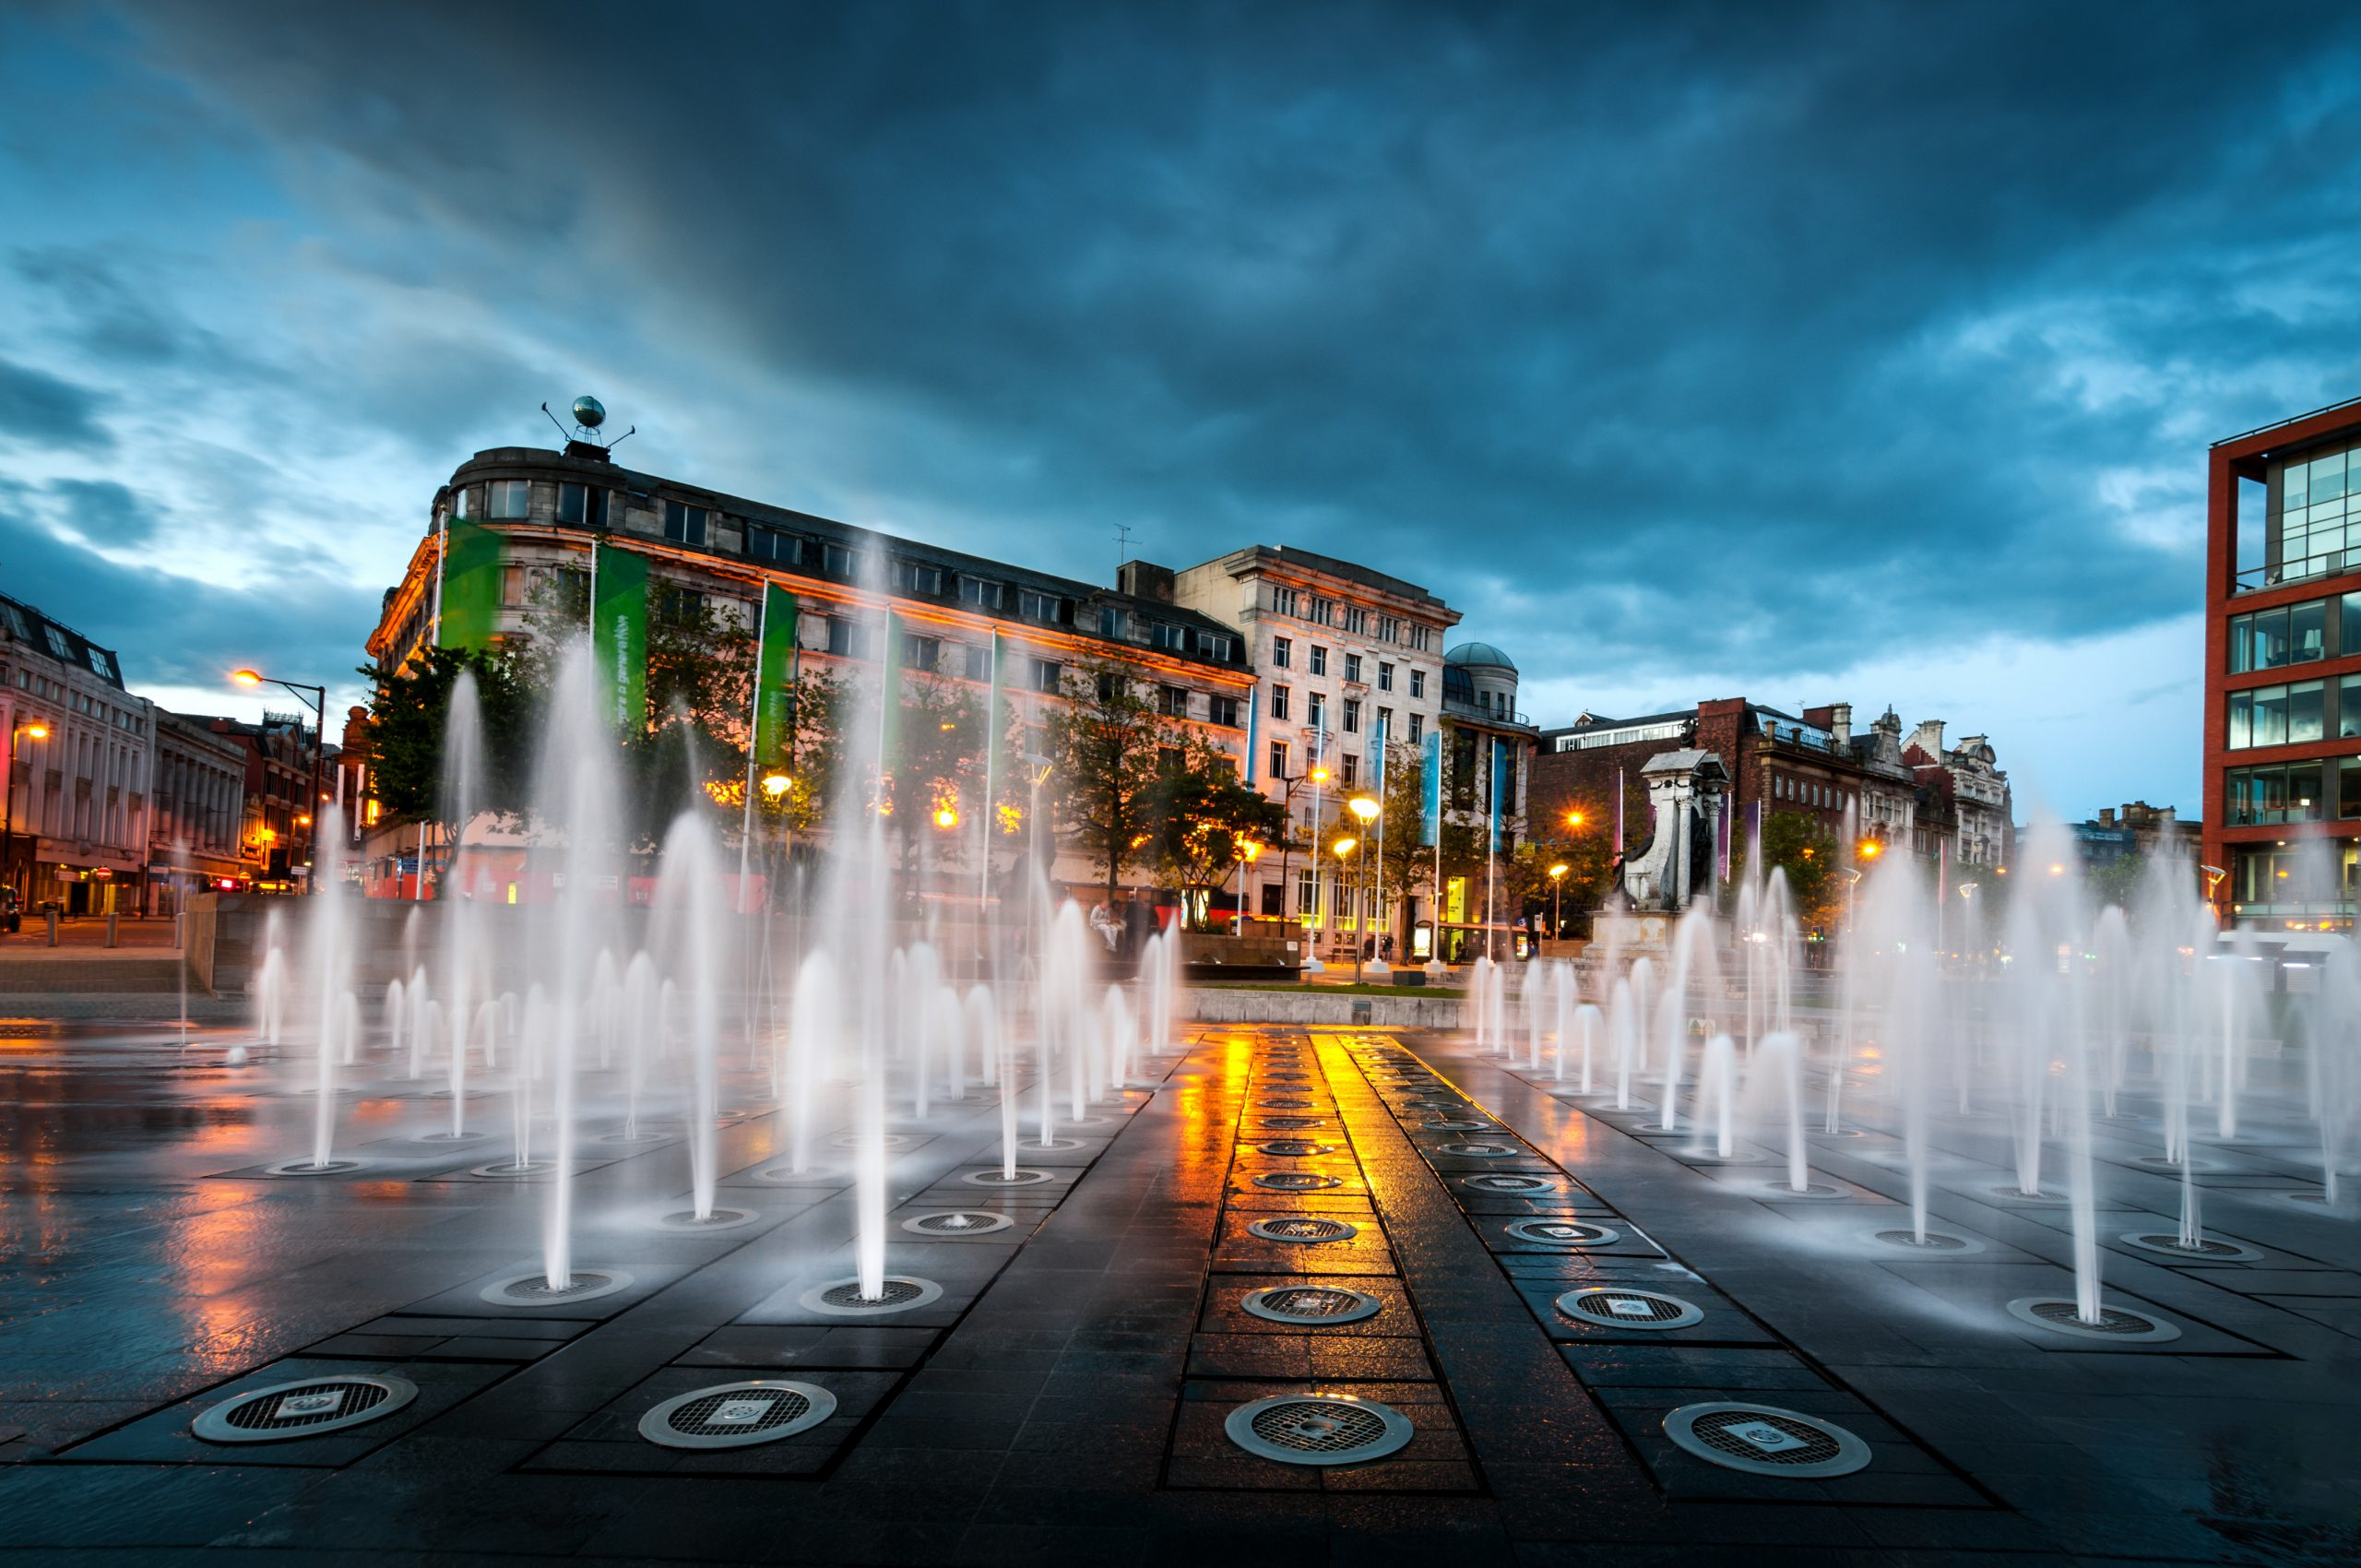 Manchester City Fountains